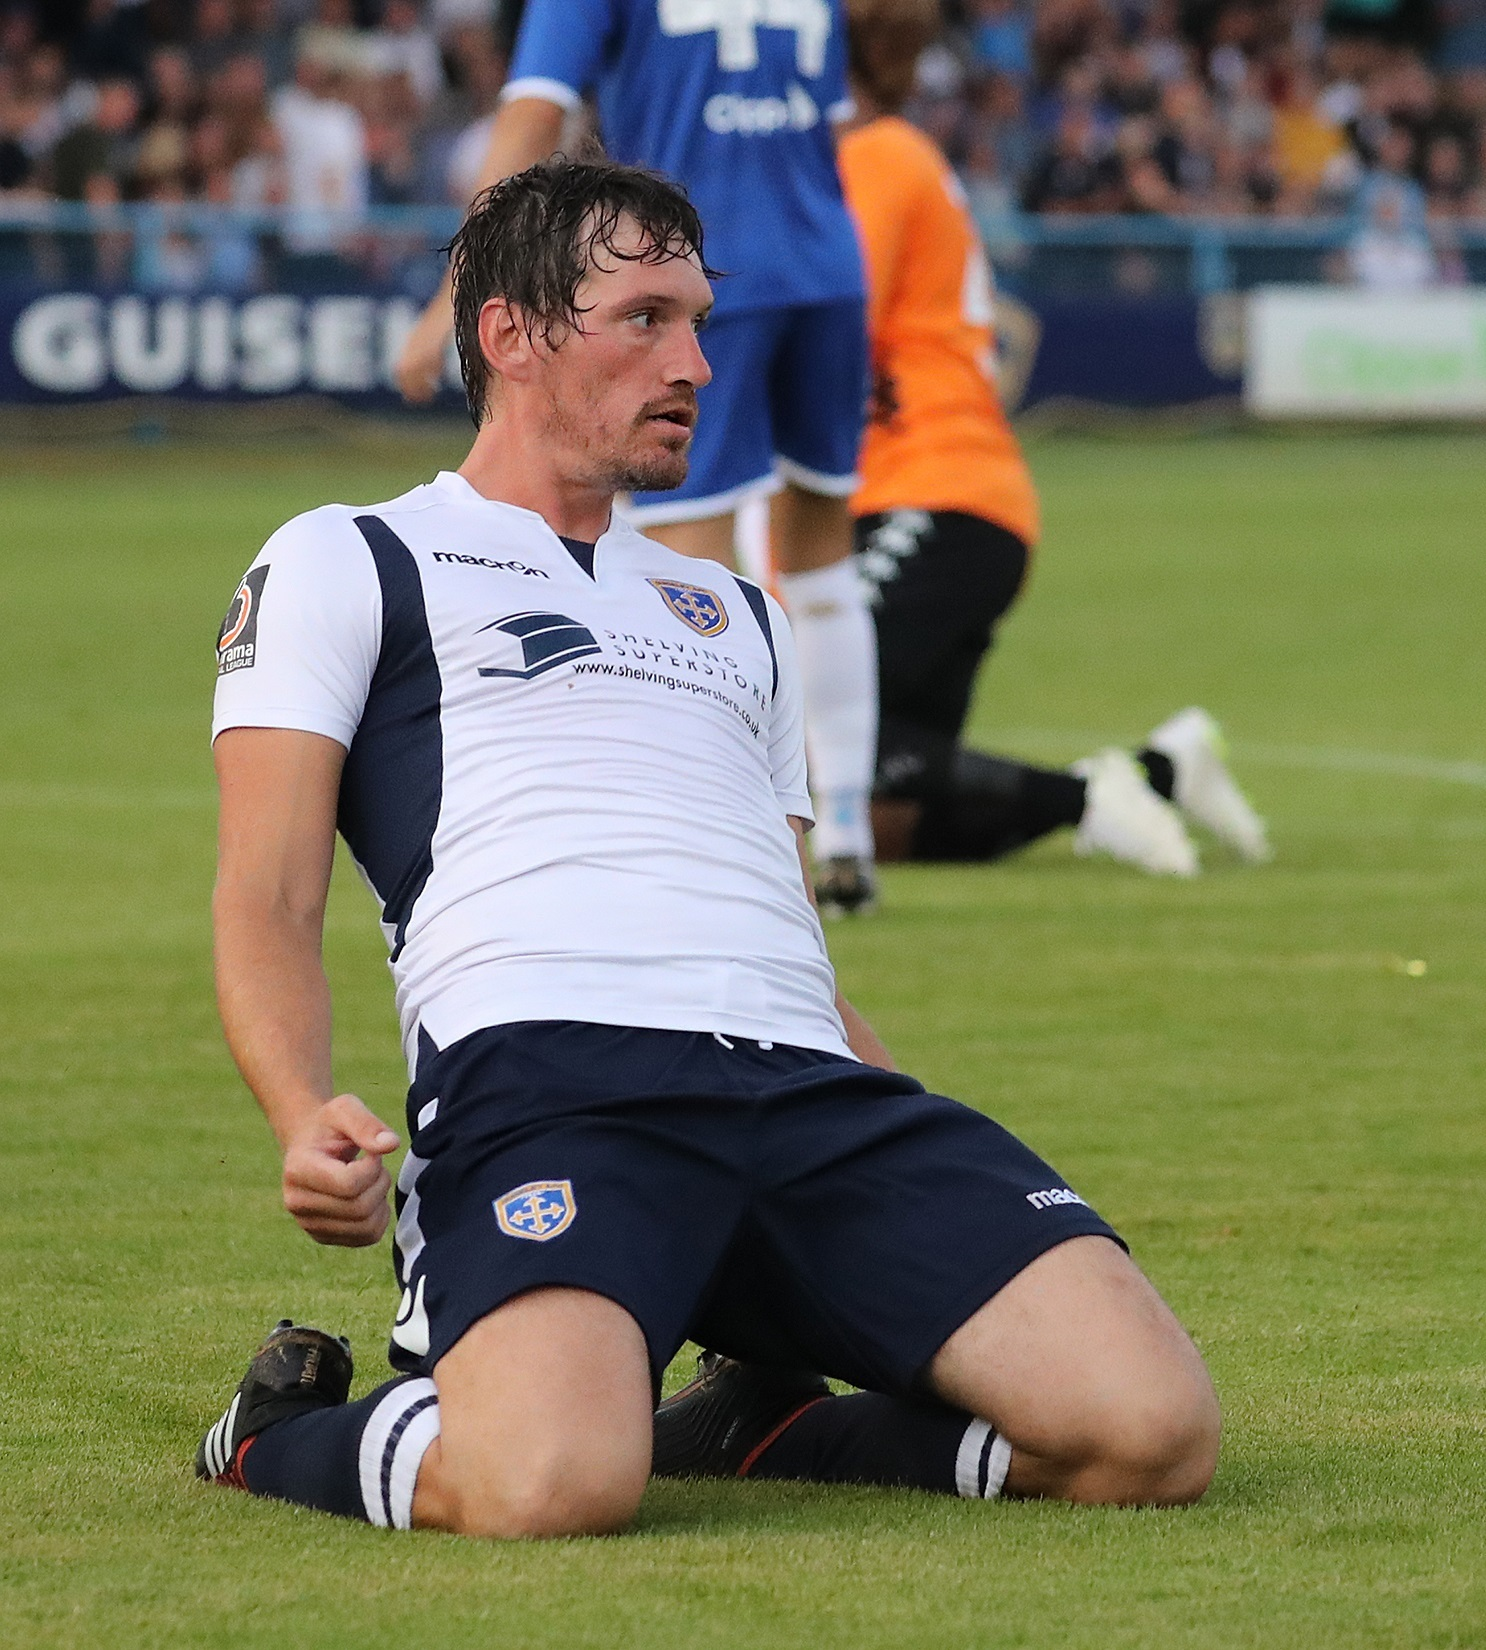 Bignot: Guiseley can kick on as we face leaders Chorley